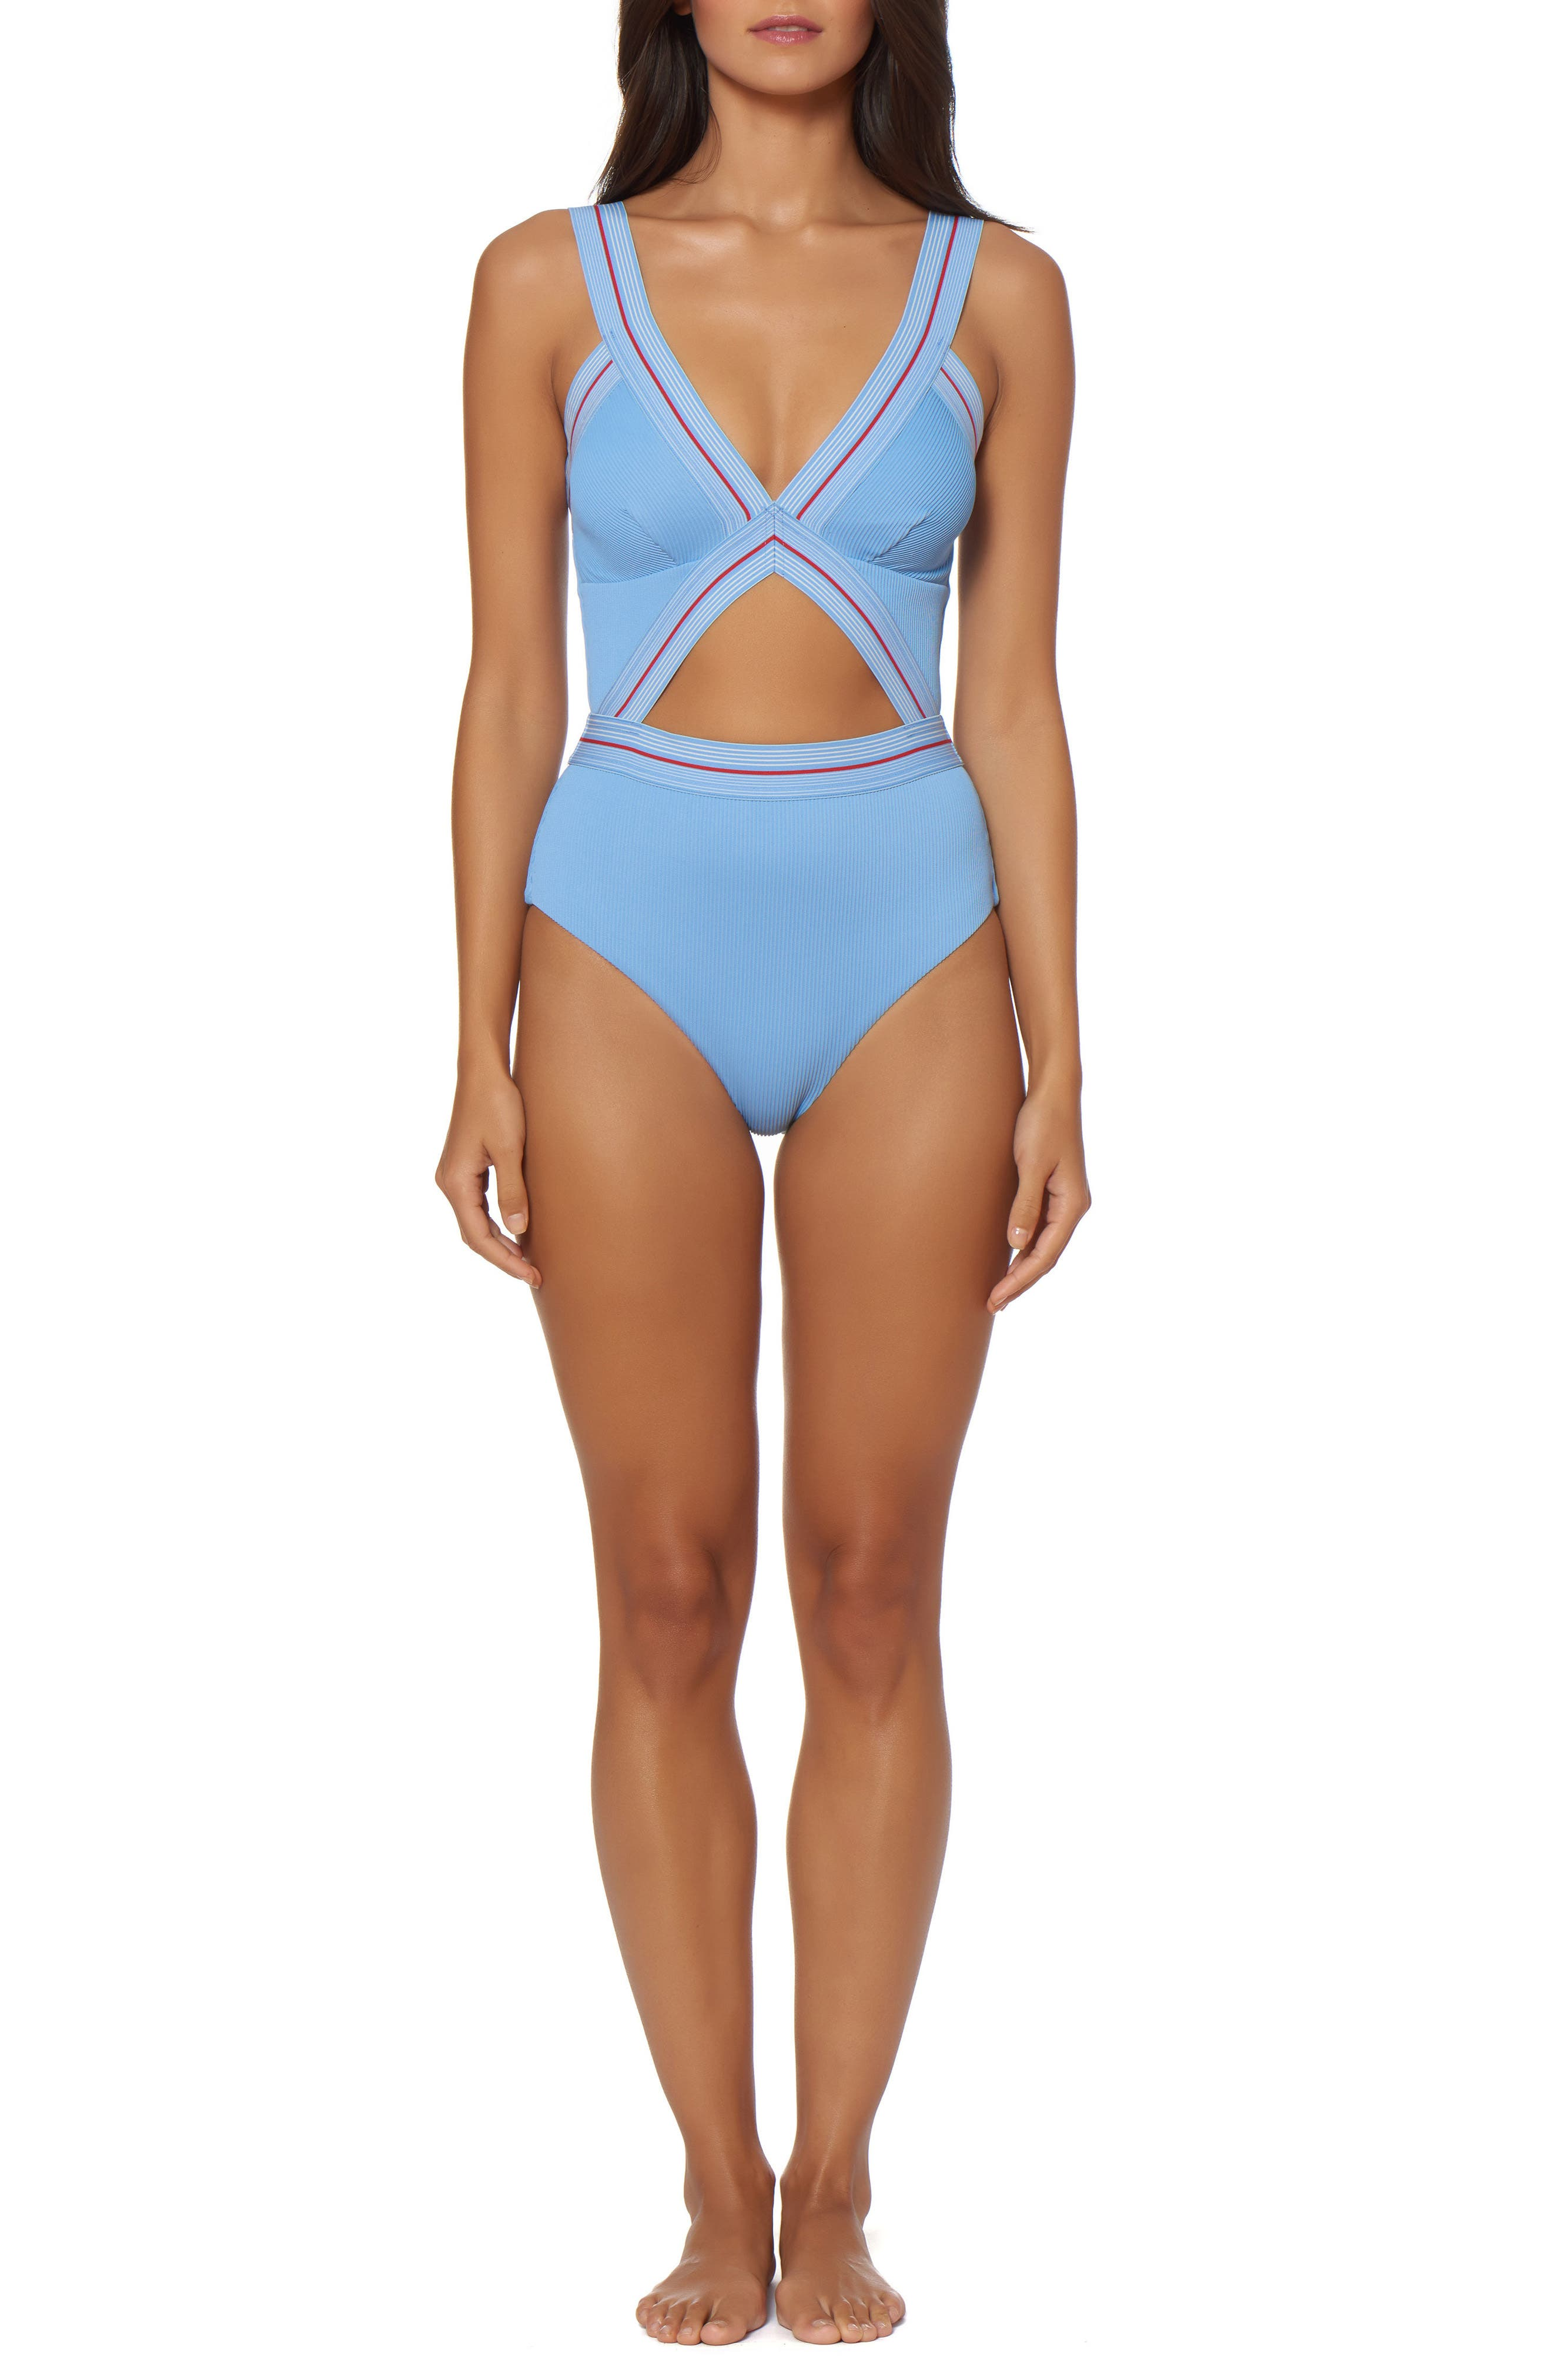 Dolce Vita Bondi Beach One-Piece Swimsuit